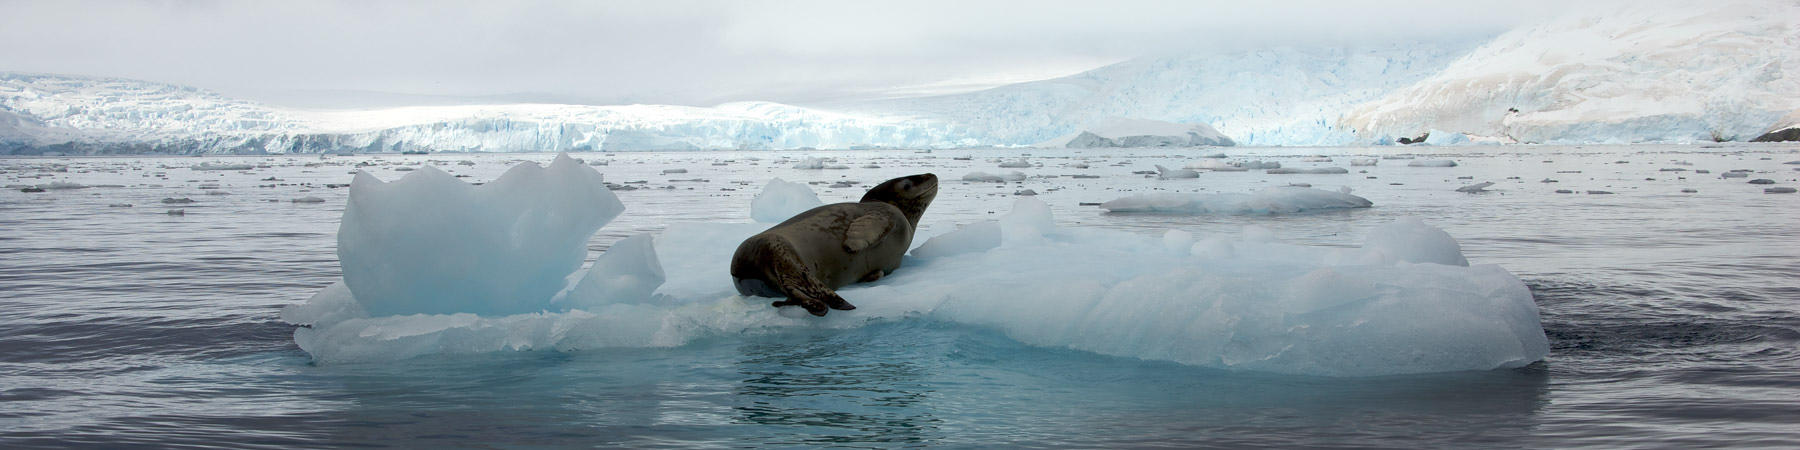 Antarctique - Photo Plisson